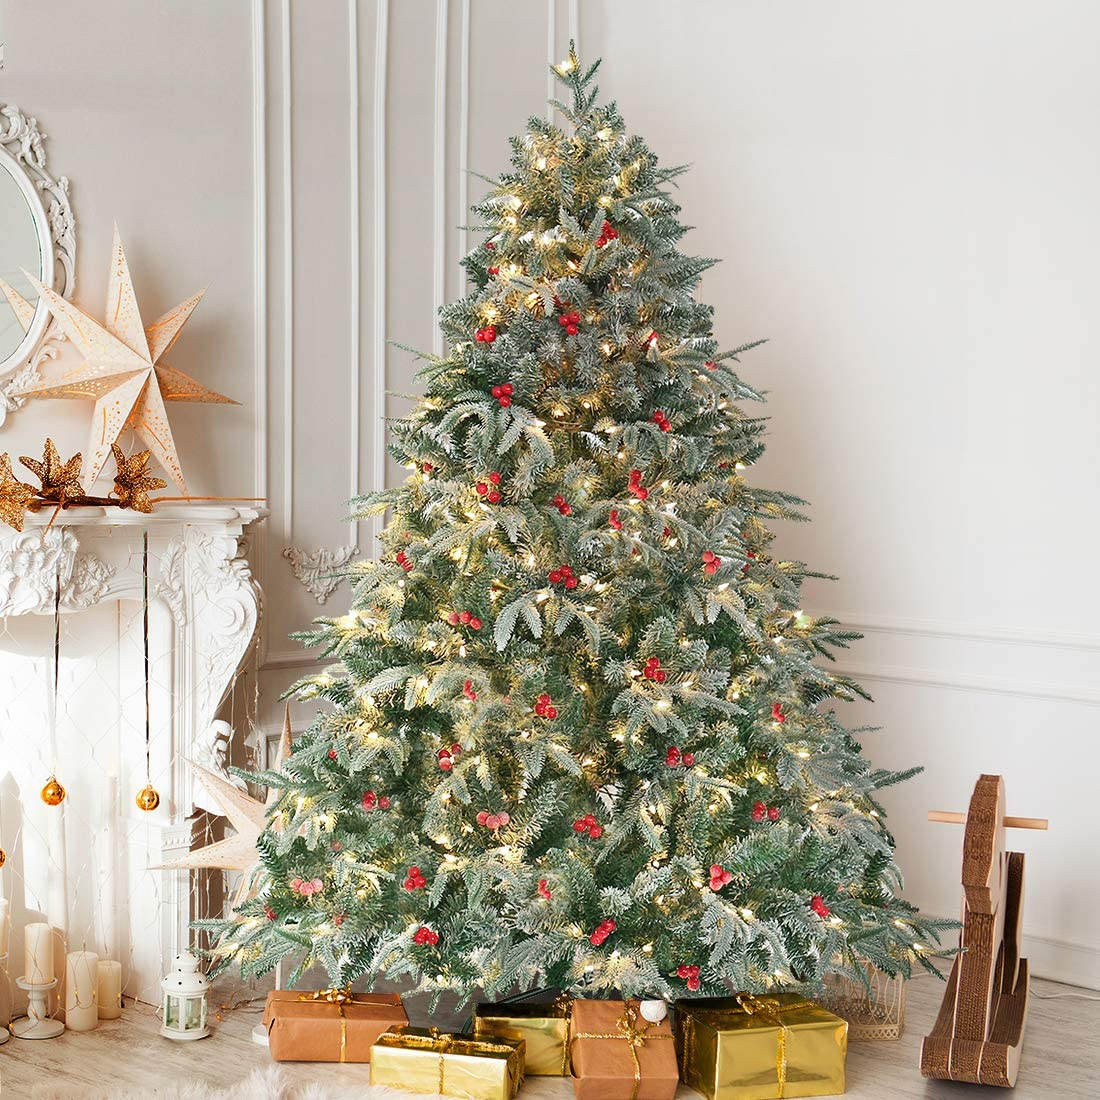 40 christmas decorations that will leave you and anyone else who enters your home with much holiday cheer | parenting questions | mamas uncut 71eyhguzbml. ac sl1100